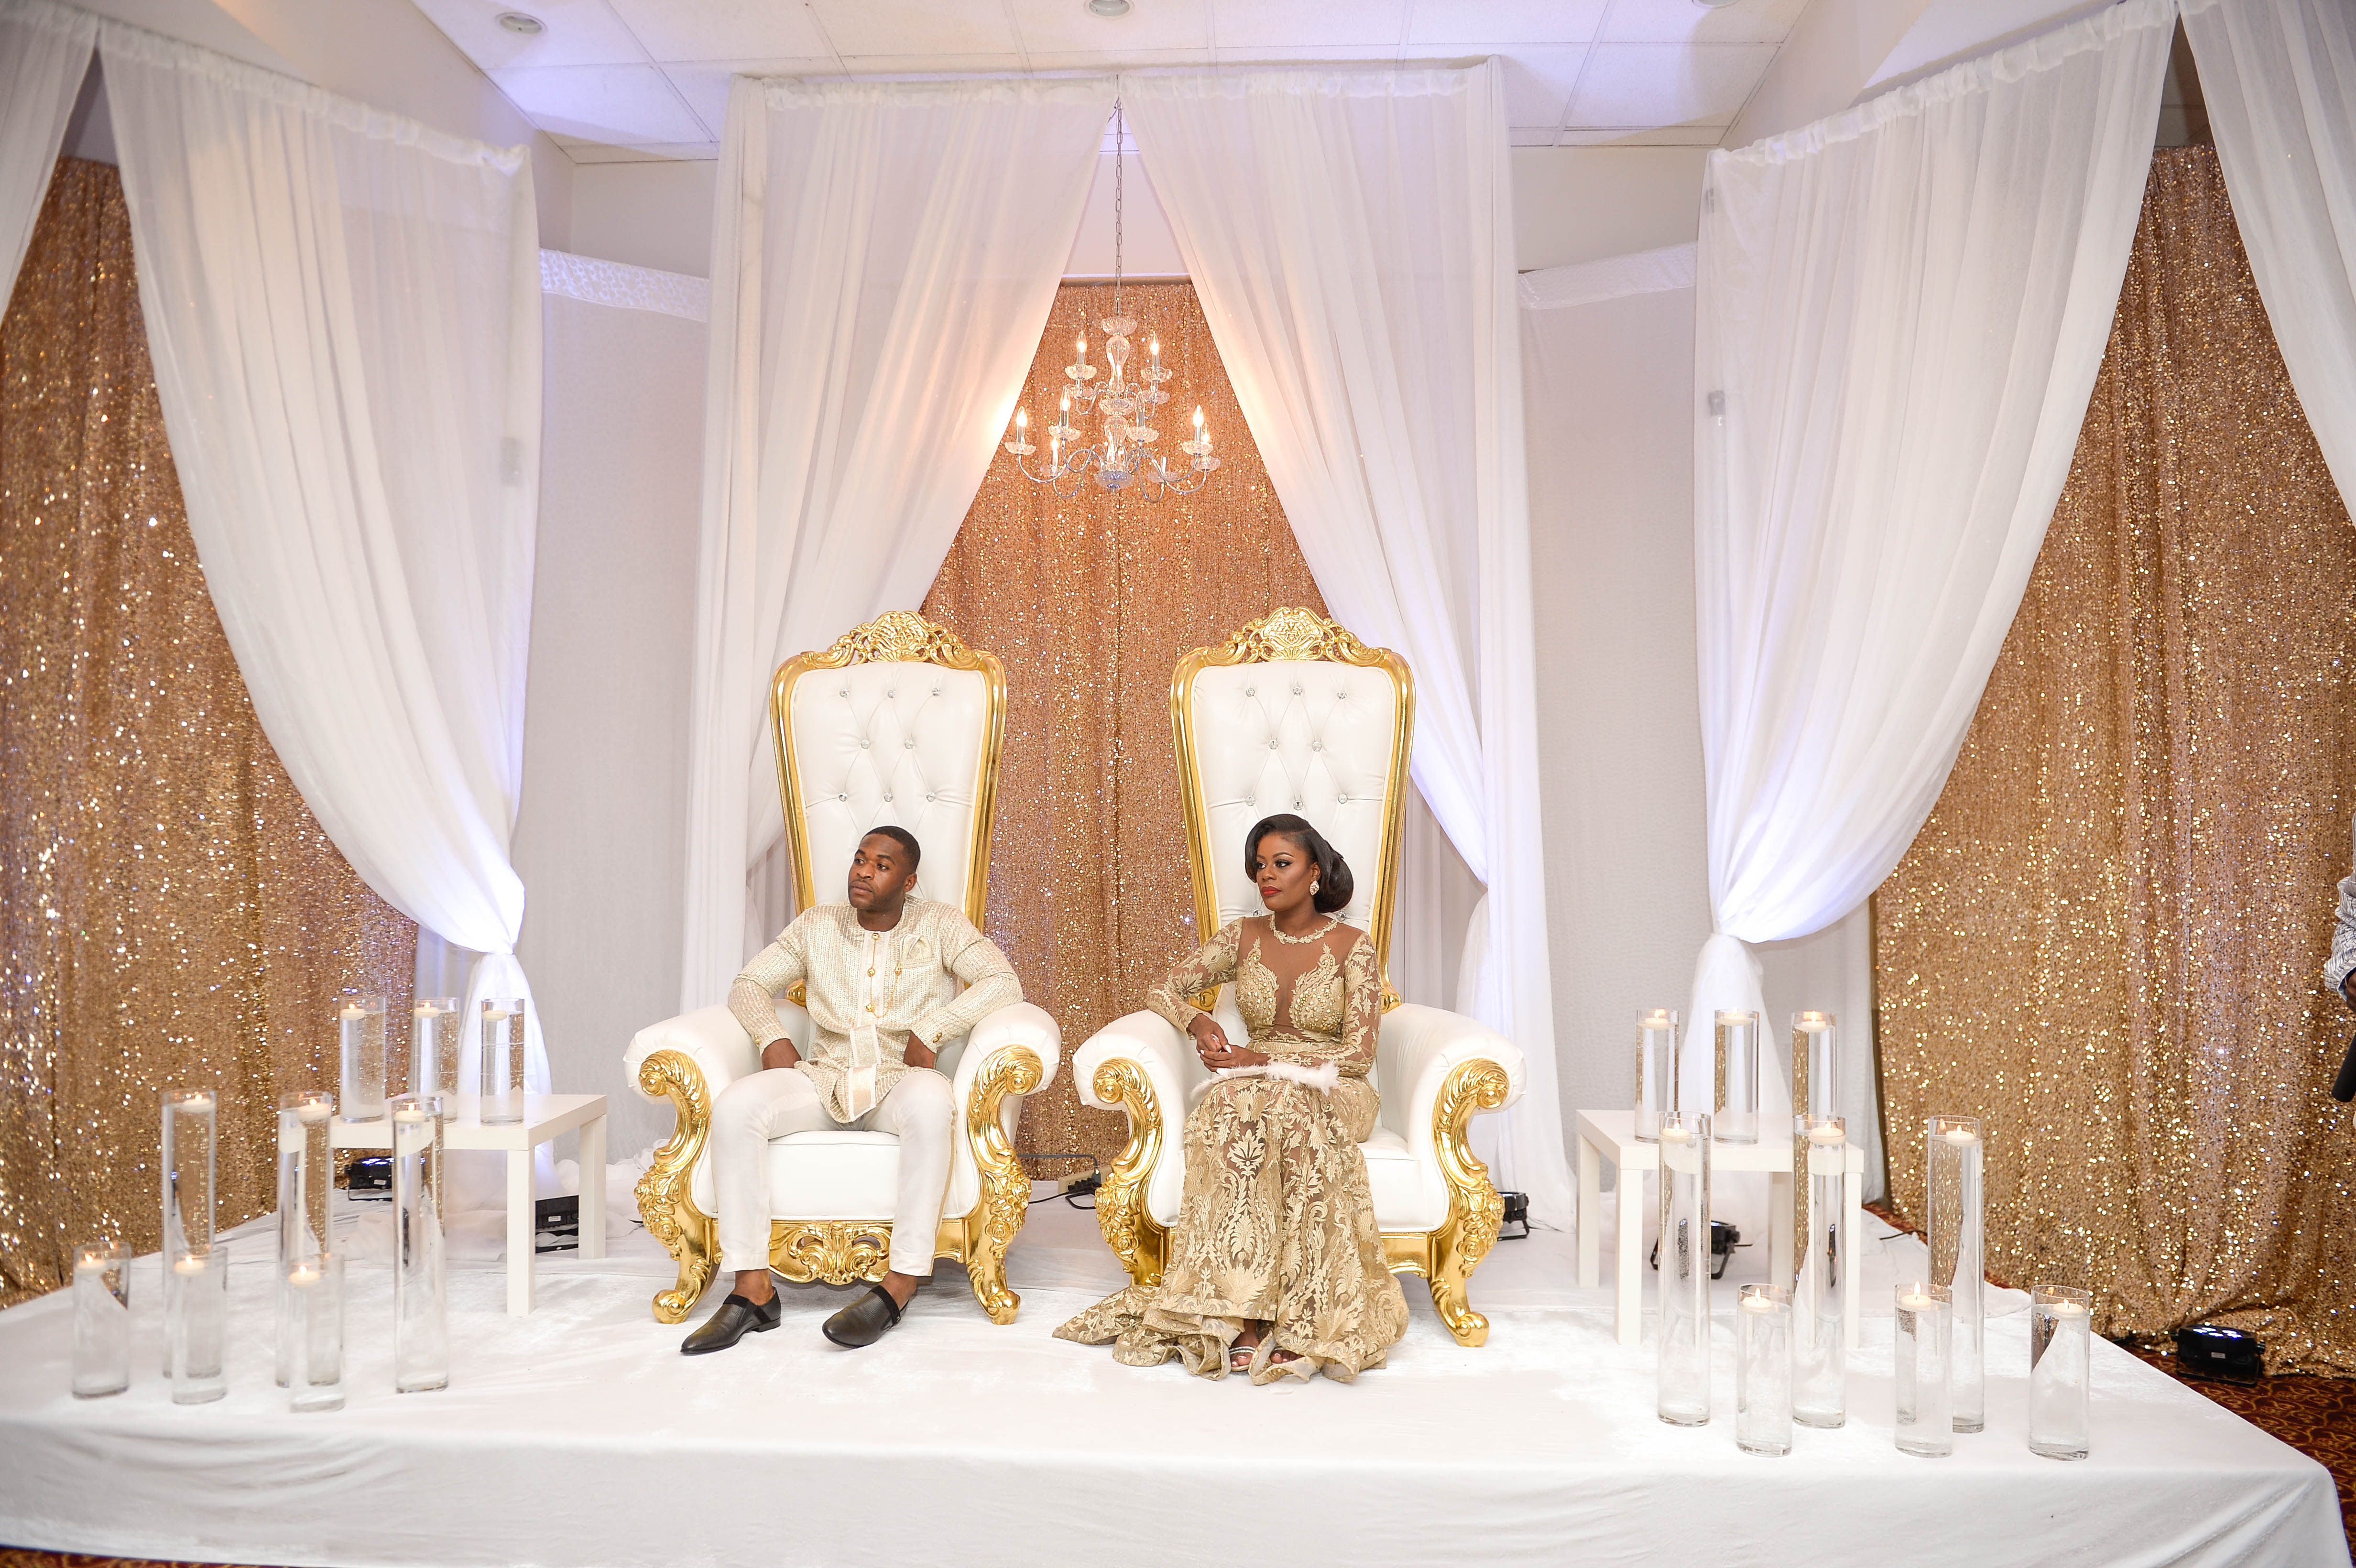 They Had Their Beautiful Coming To America Themed Traditional Marriage Ceremony On Saay July 23rd 2016 Infused With The Rich Ghanaian Culture